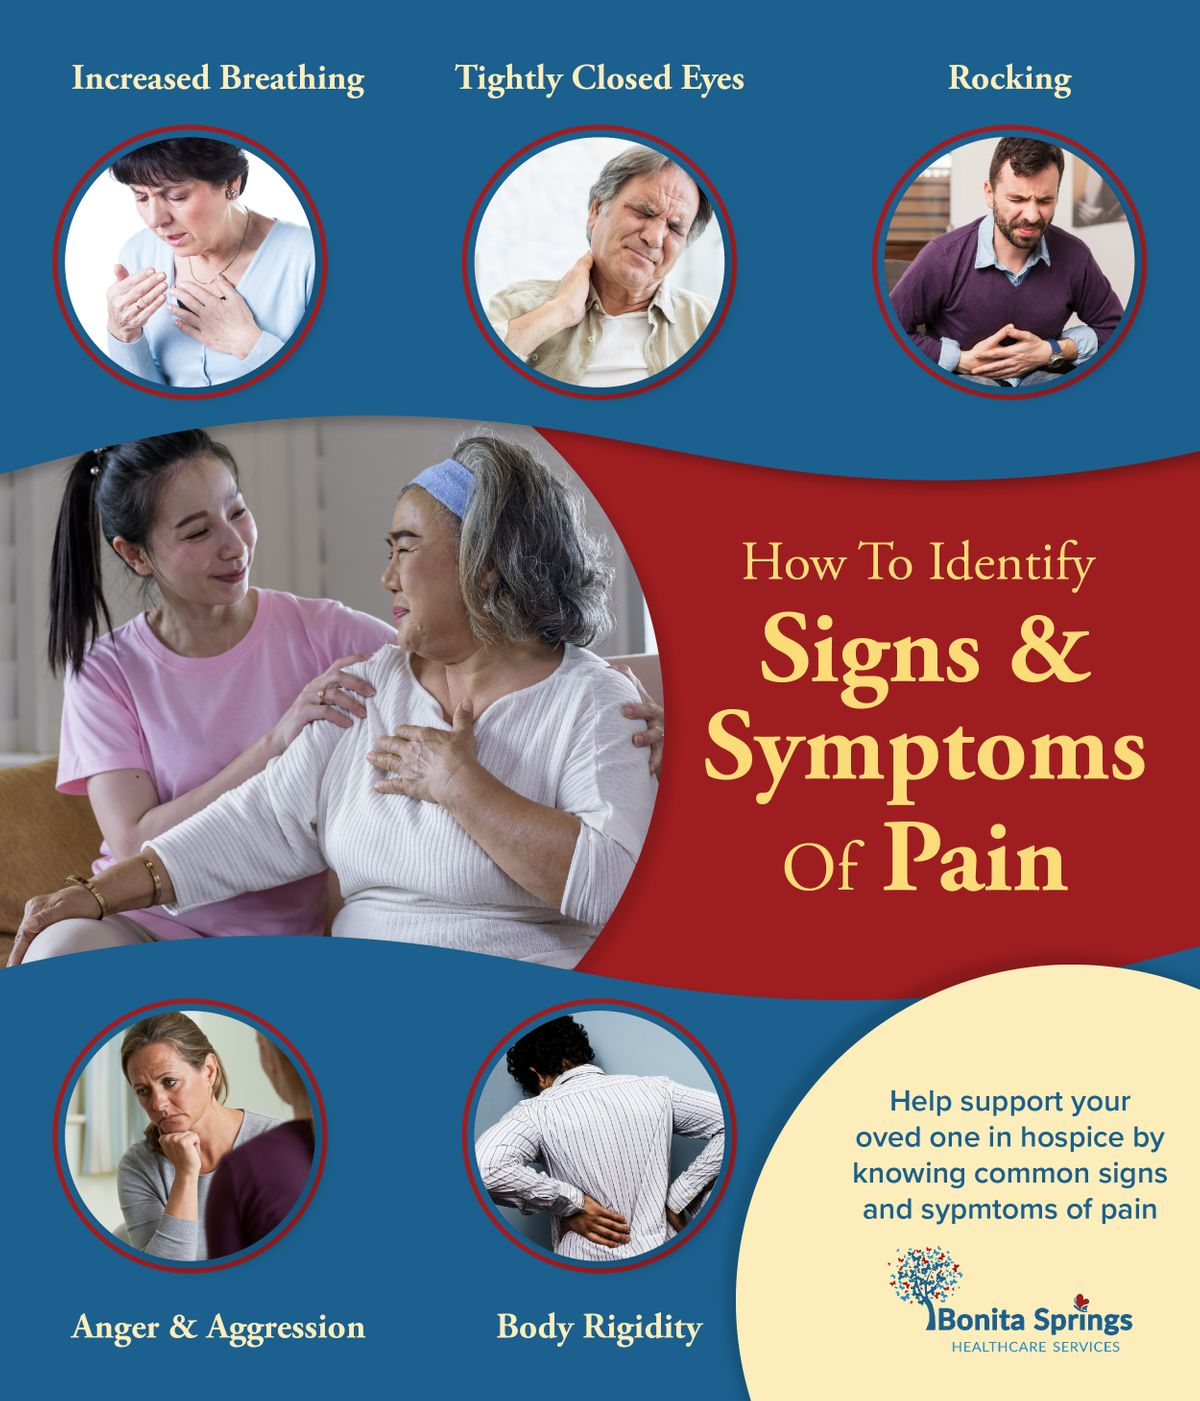 How To Identify Signs & Symptoms Of Pain-01.jpg